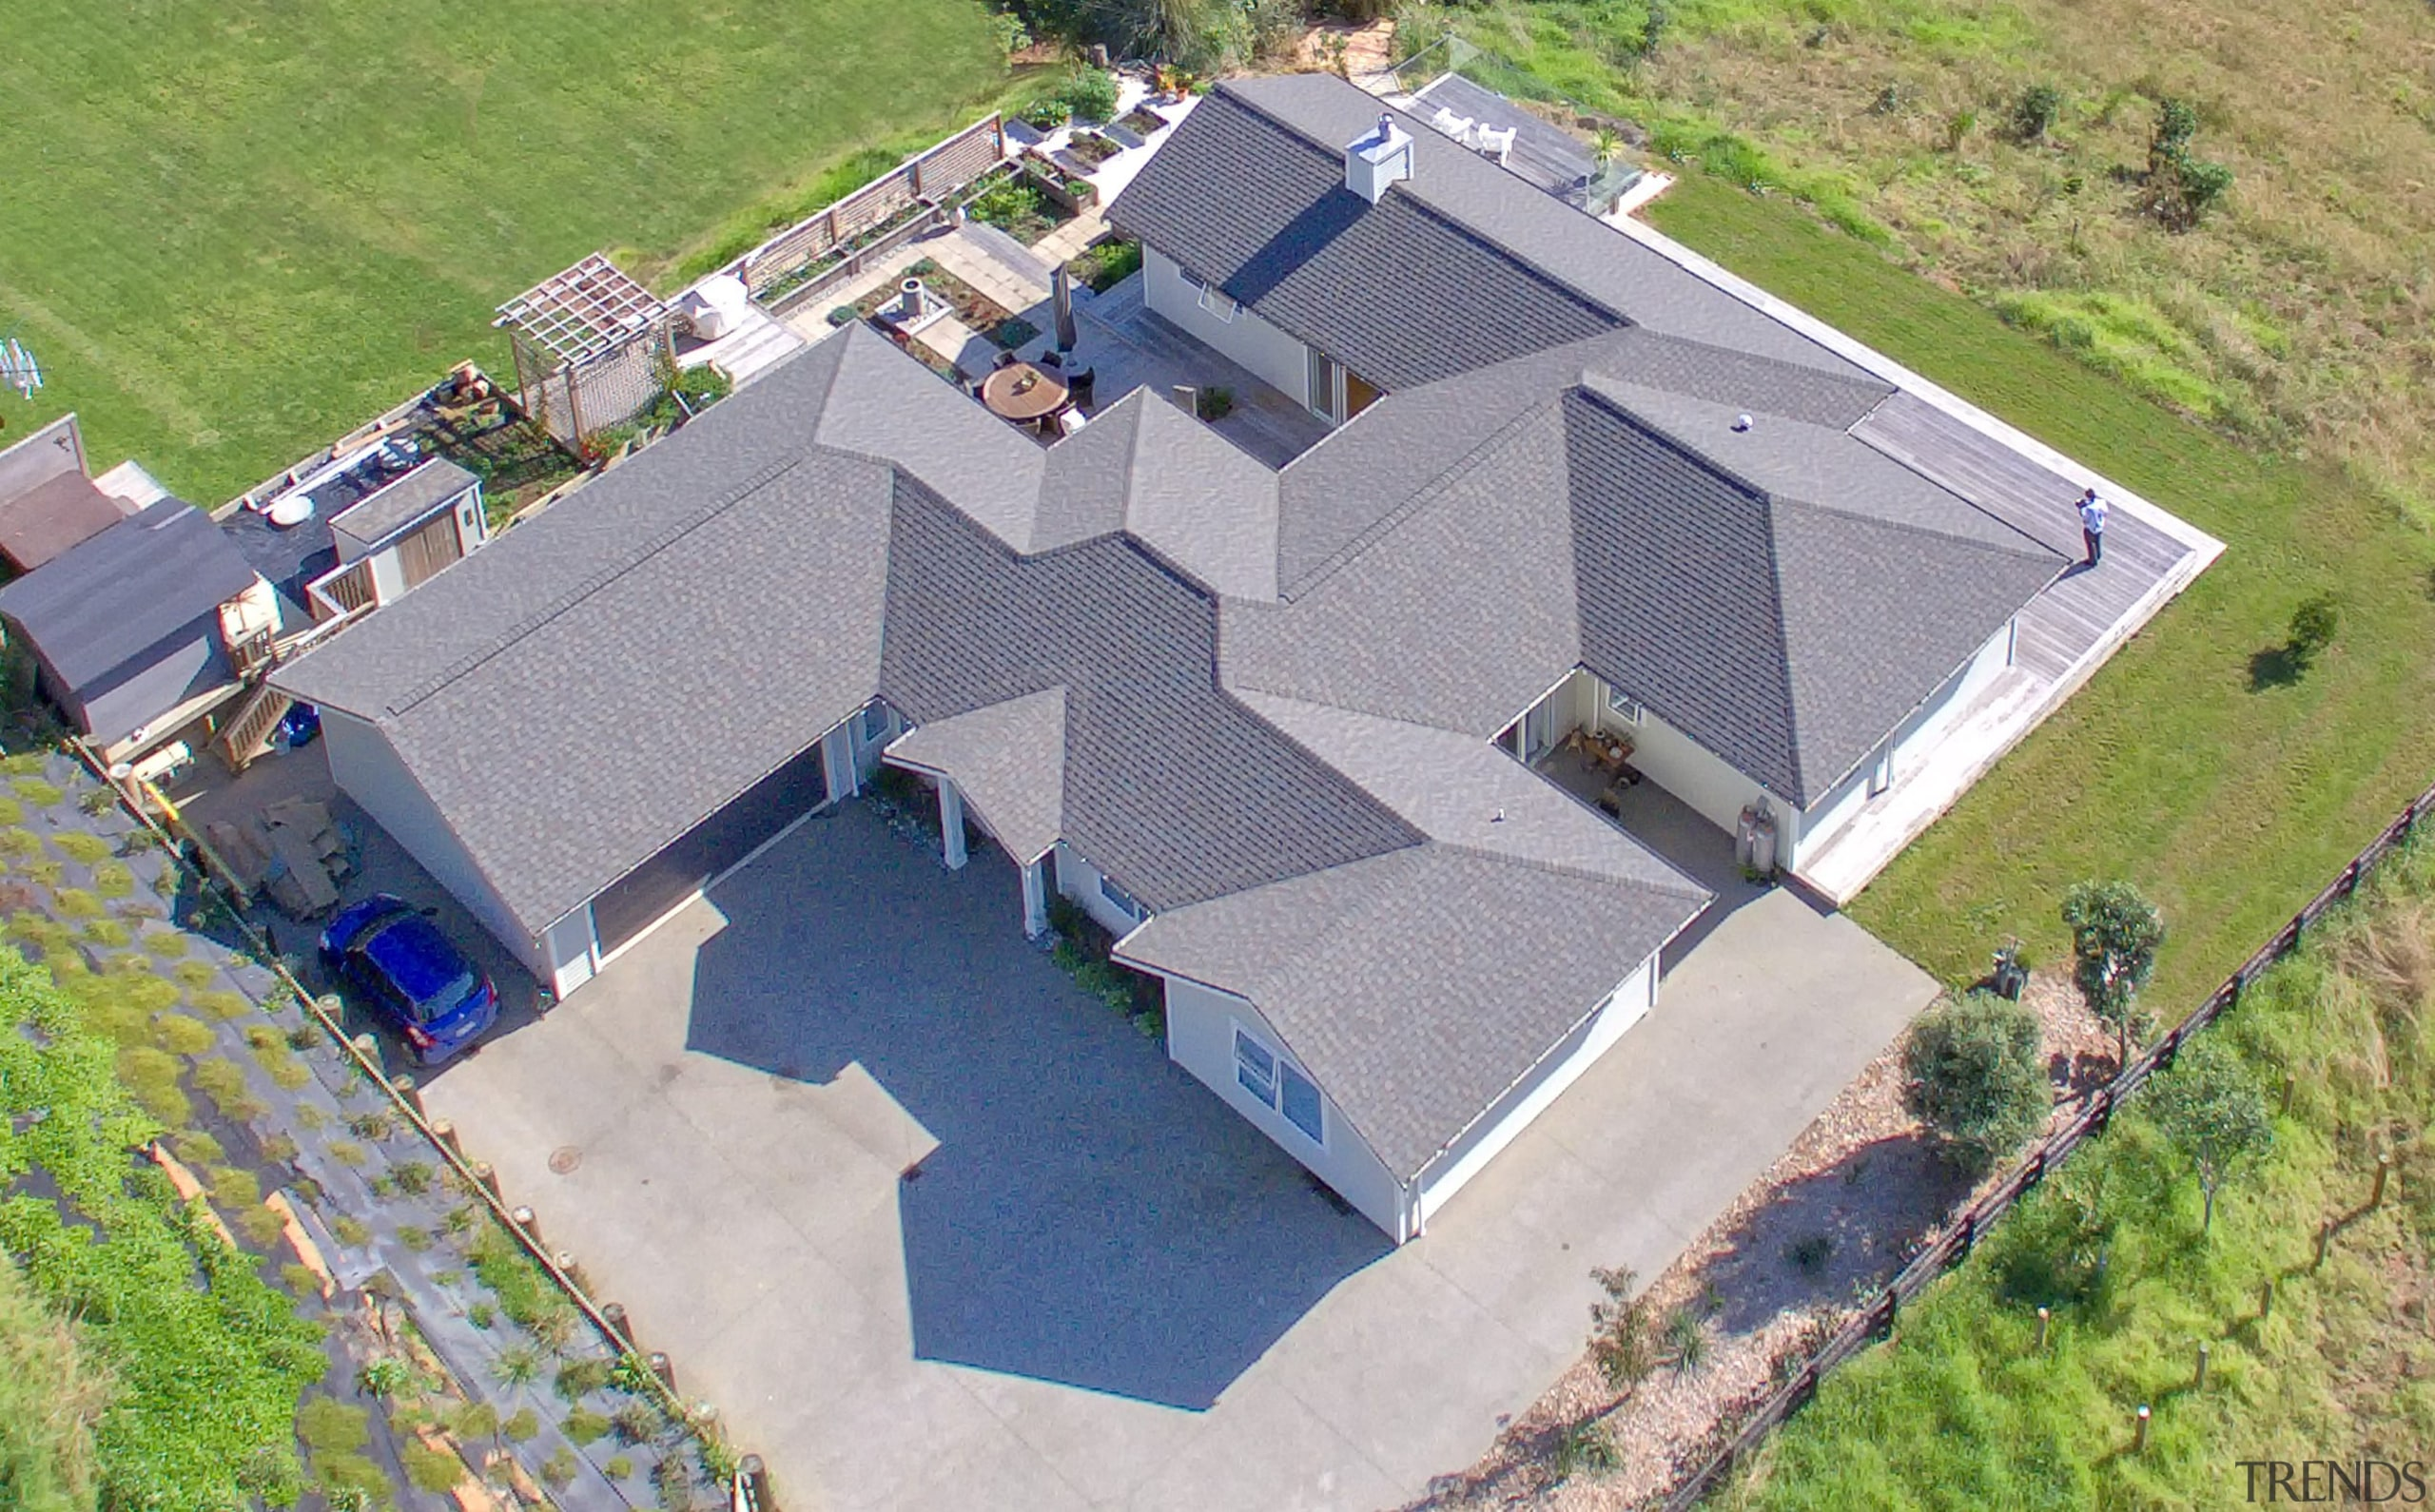 This U-shaped Fowler Homes residence wraps around three aerial photography, architecture, bird's eye view, estate, home, house, property, real estate, roof, gray, fowler homes, new home,  house, design and build